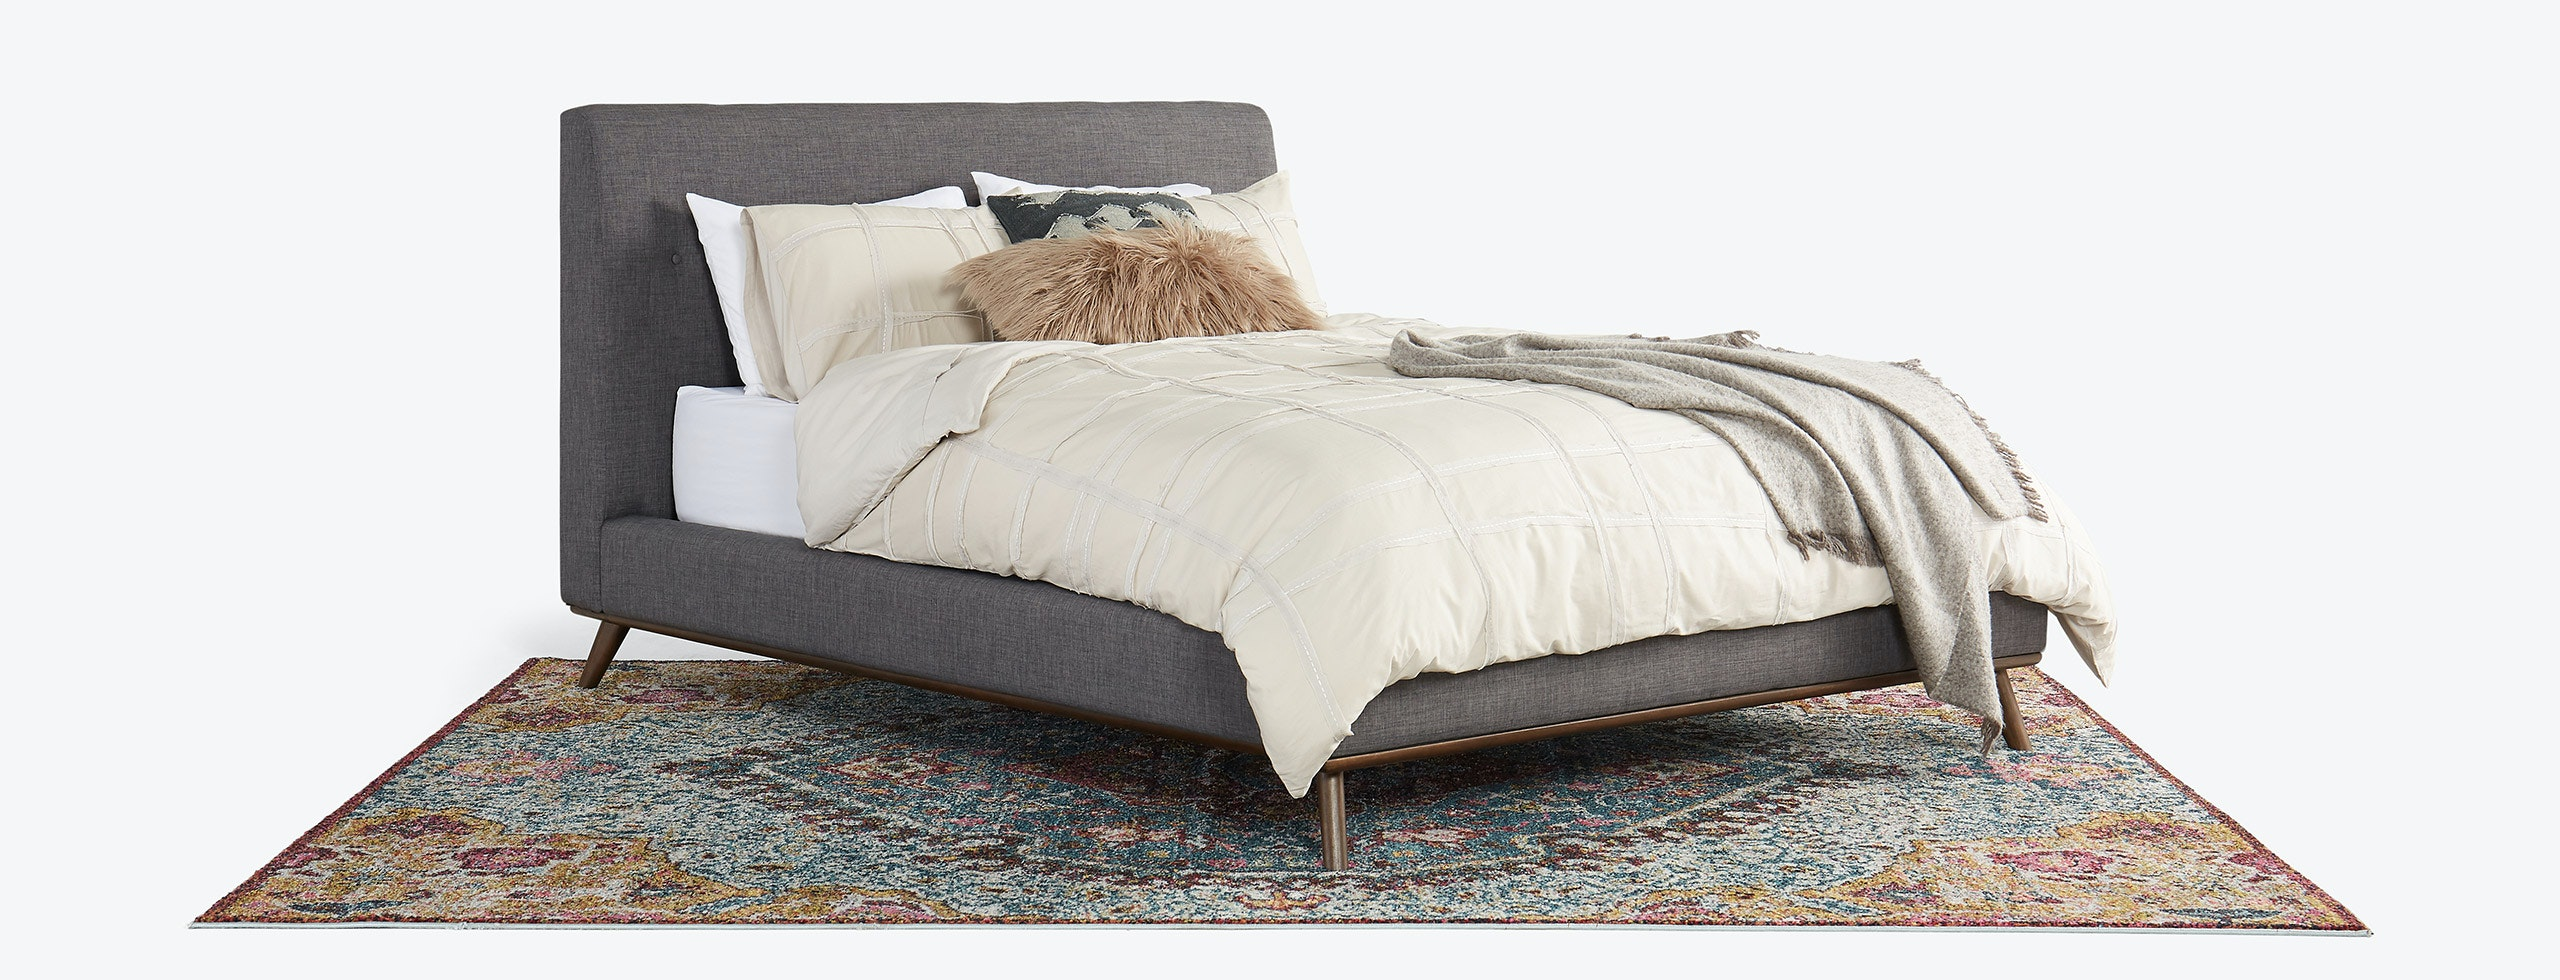 + Quick View · Hopson Bed